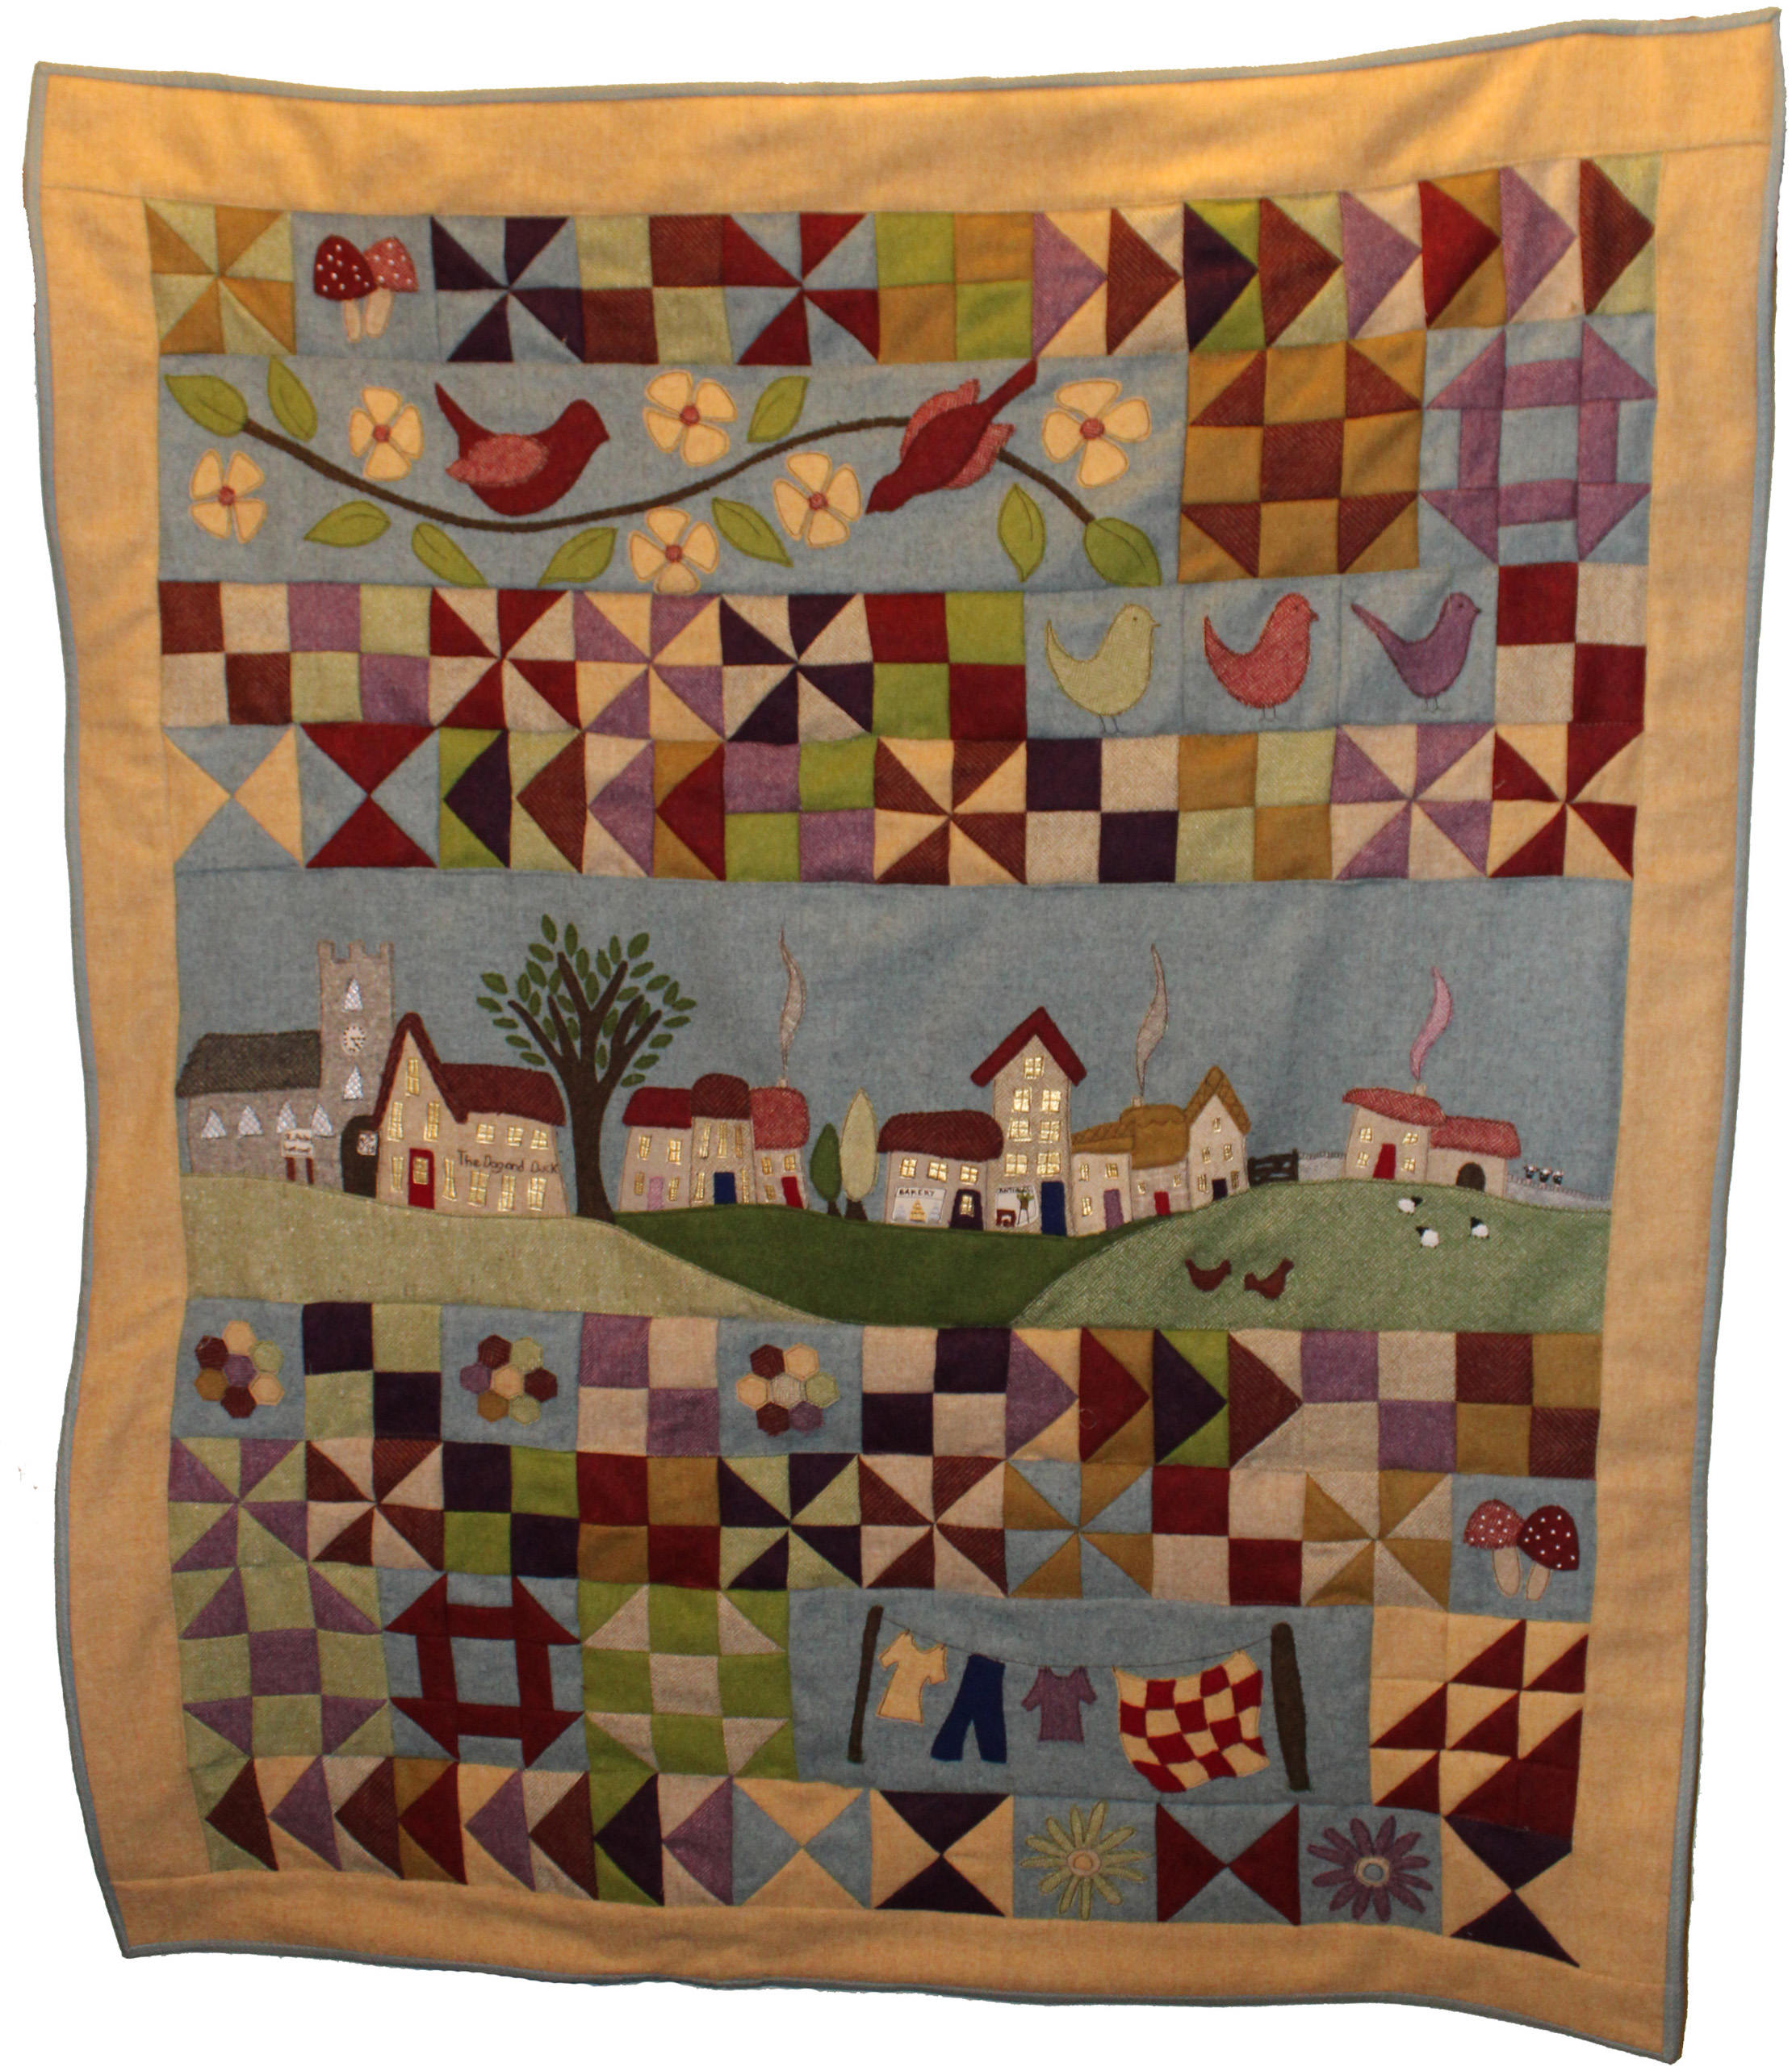 Village Green full patchwork quilt kit